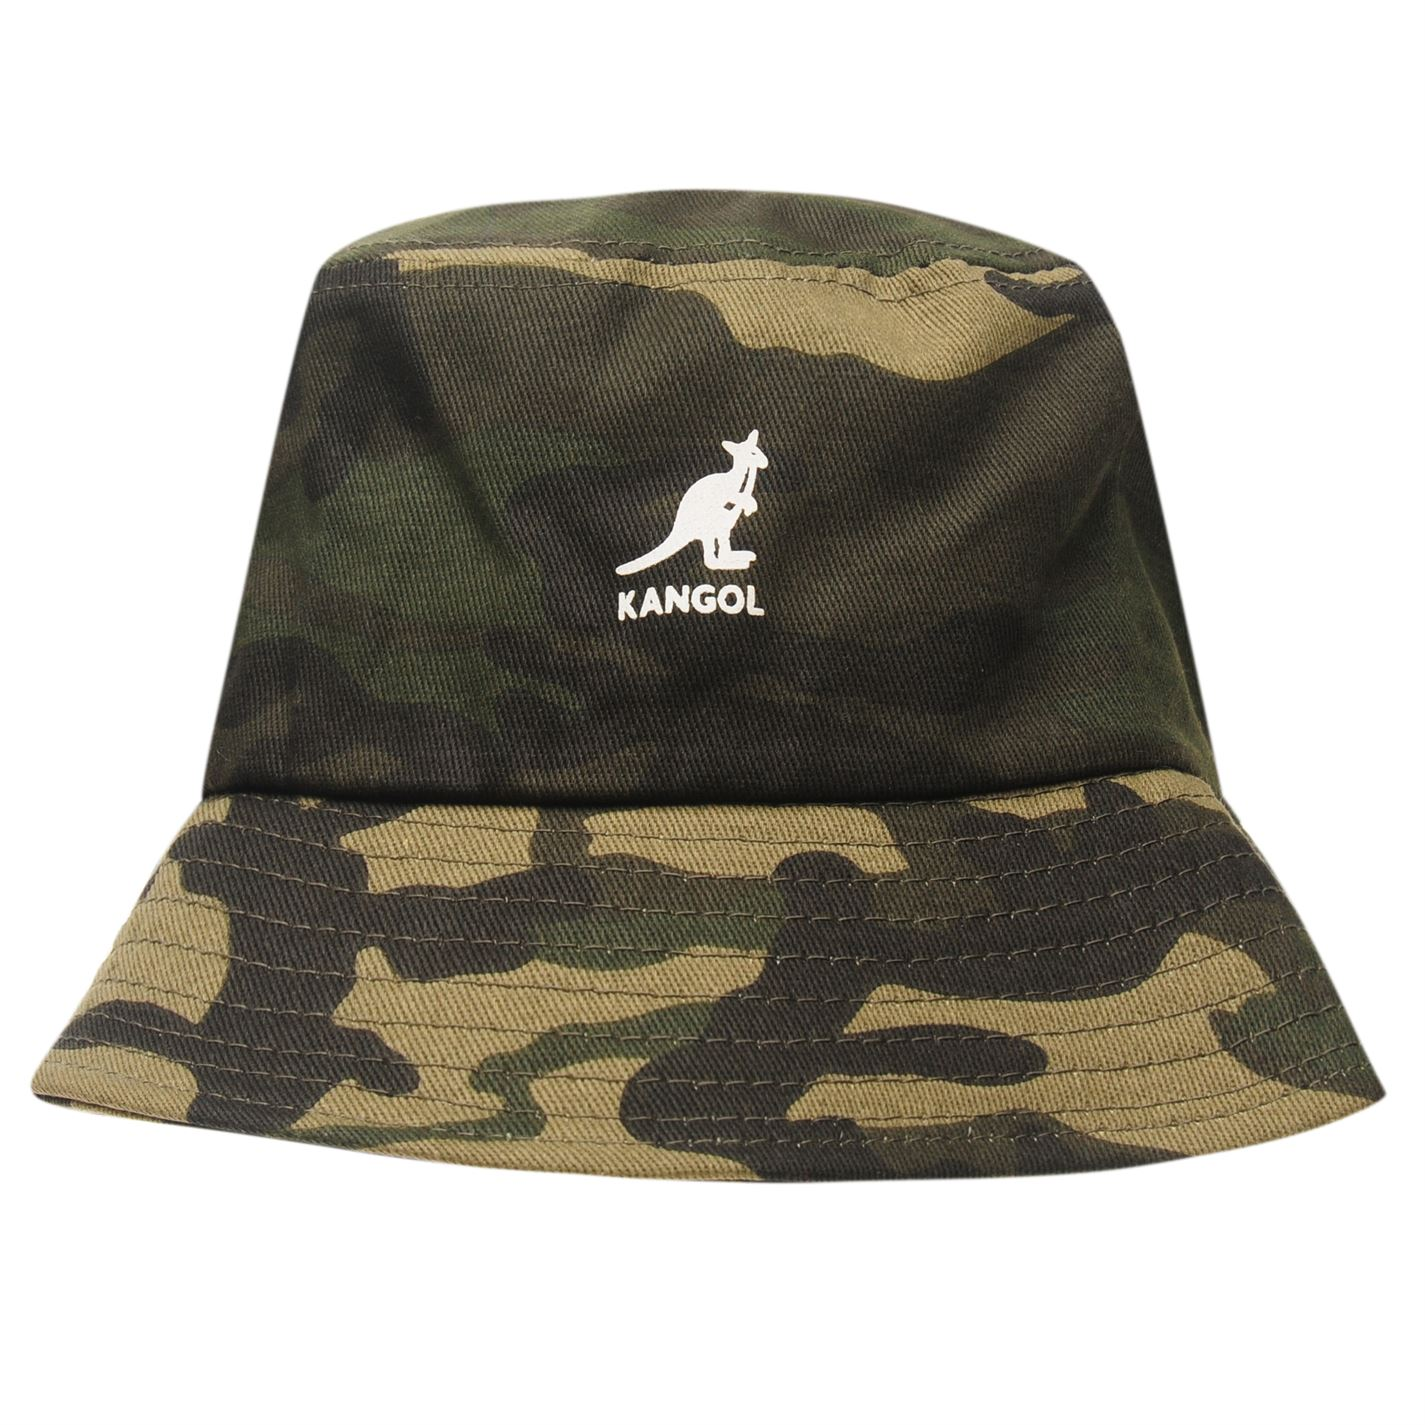 01ec5c51220 Kangol Mens Camouflage Bucket Hat Cotton Pattern